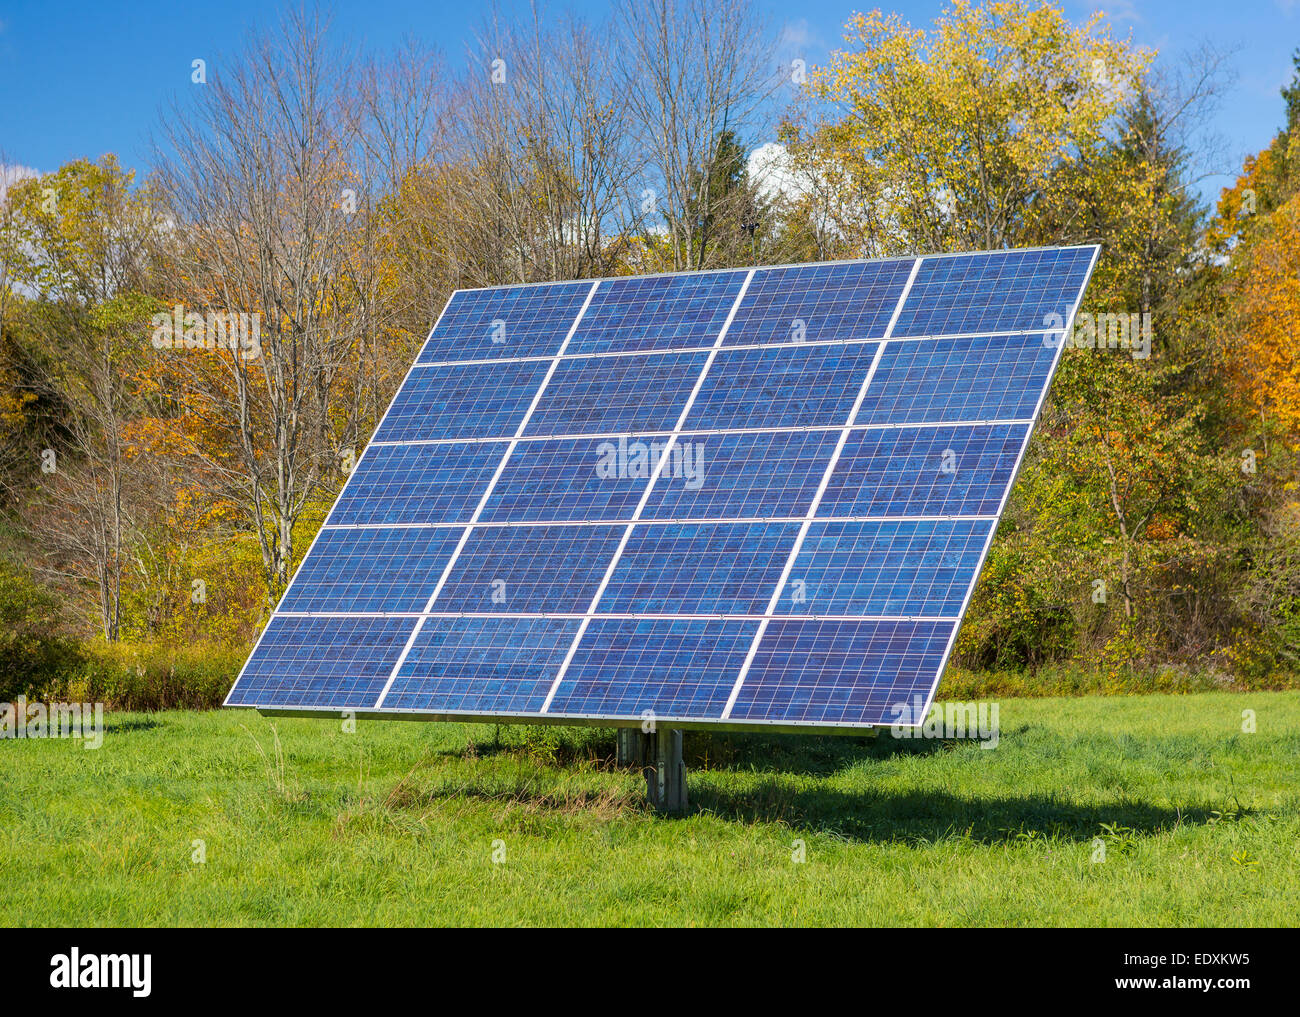 IRASVILLE, VERMONT, USA - Solar power panel in field, Mad River Valley. Alternative energy. - Stock Image